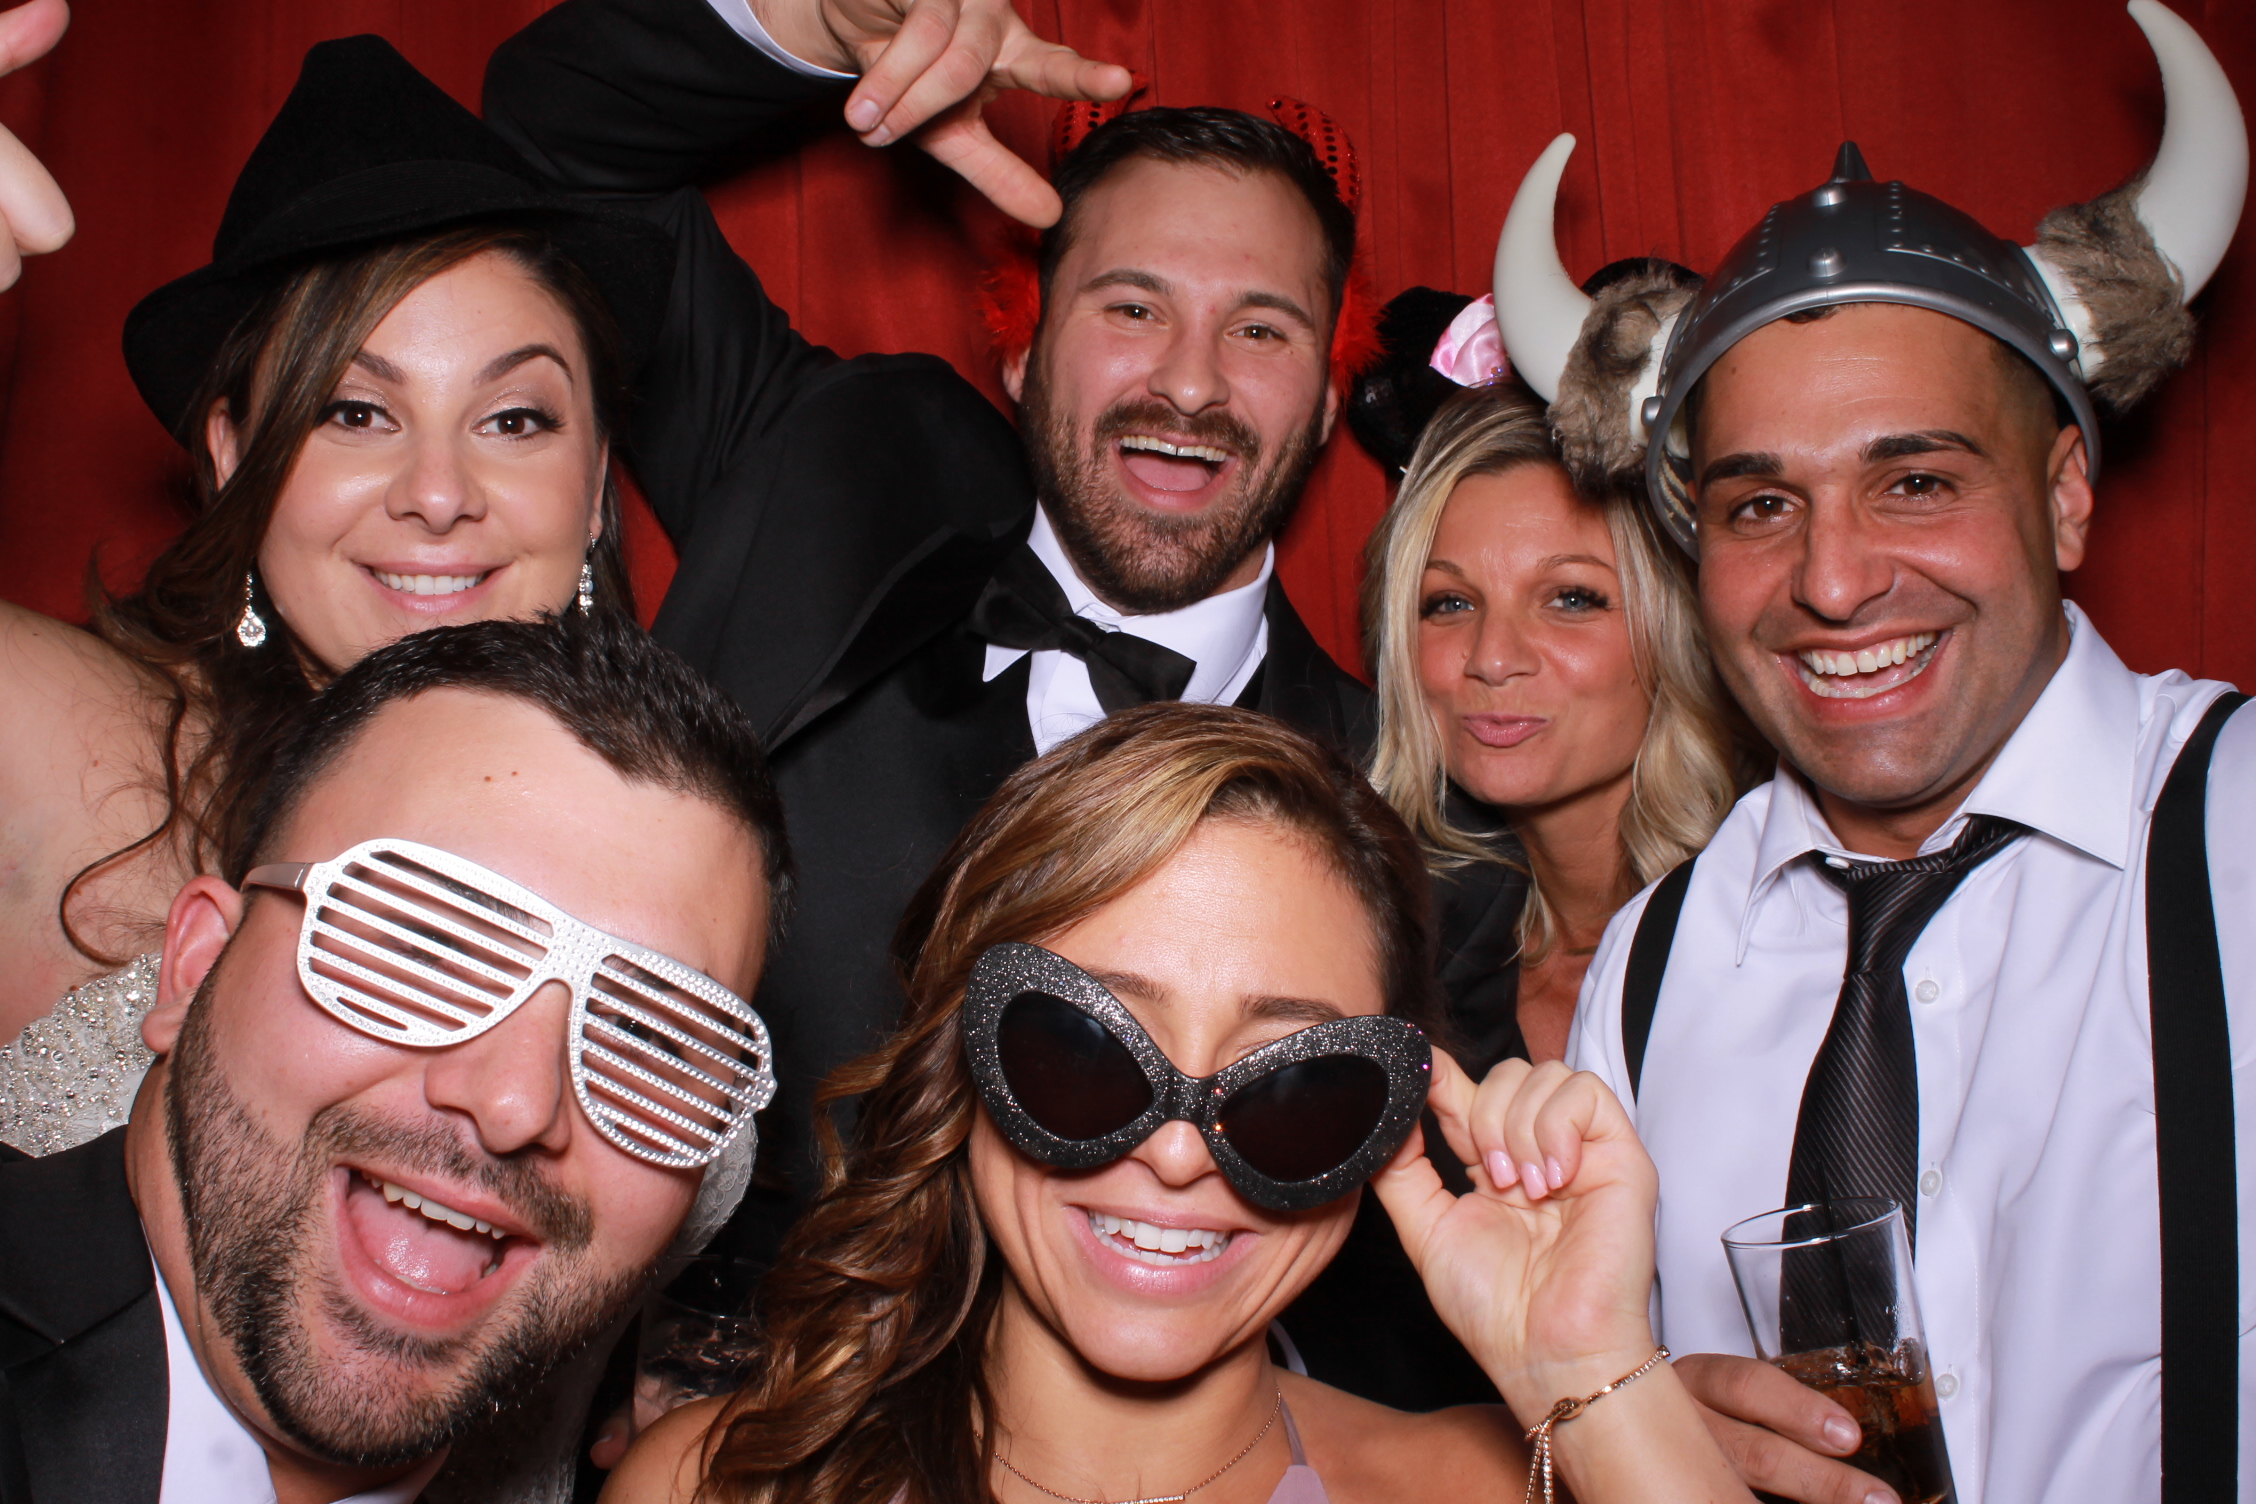 Wedding Photobooth Services in CT